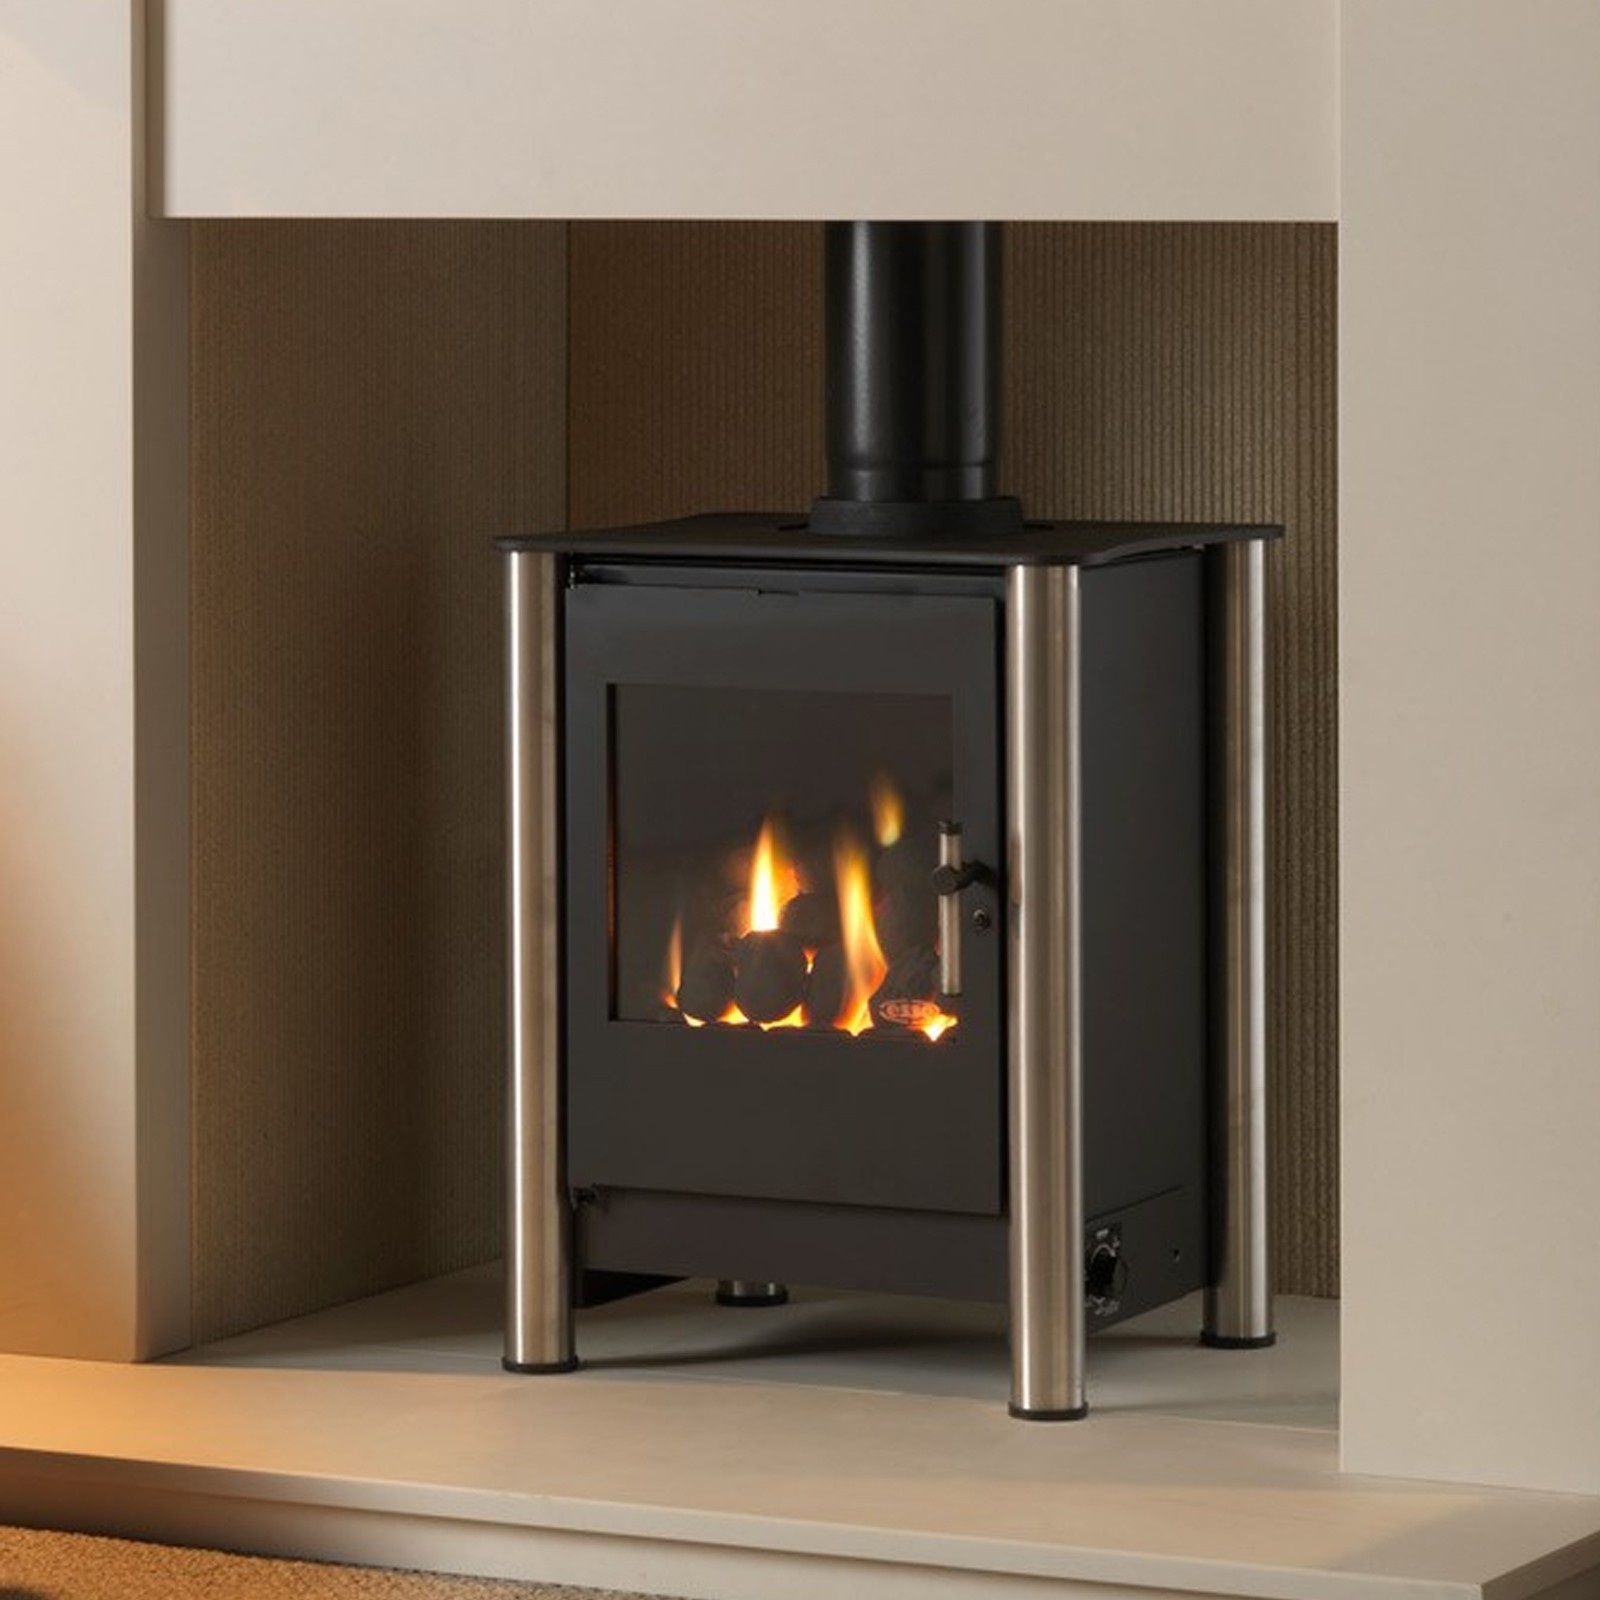 Best Uk Prices Esse G525 Gas Stove Contemporary Chic Stove